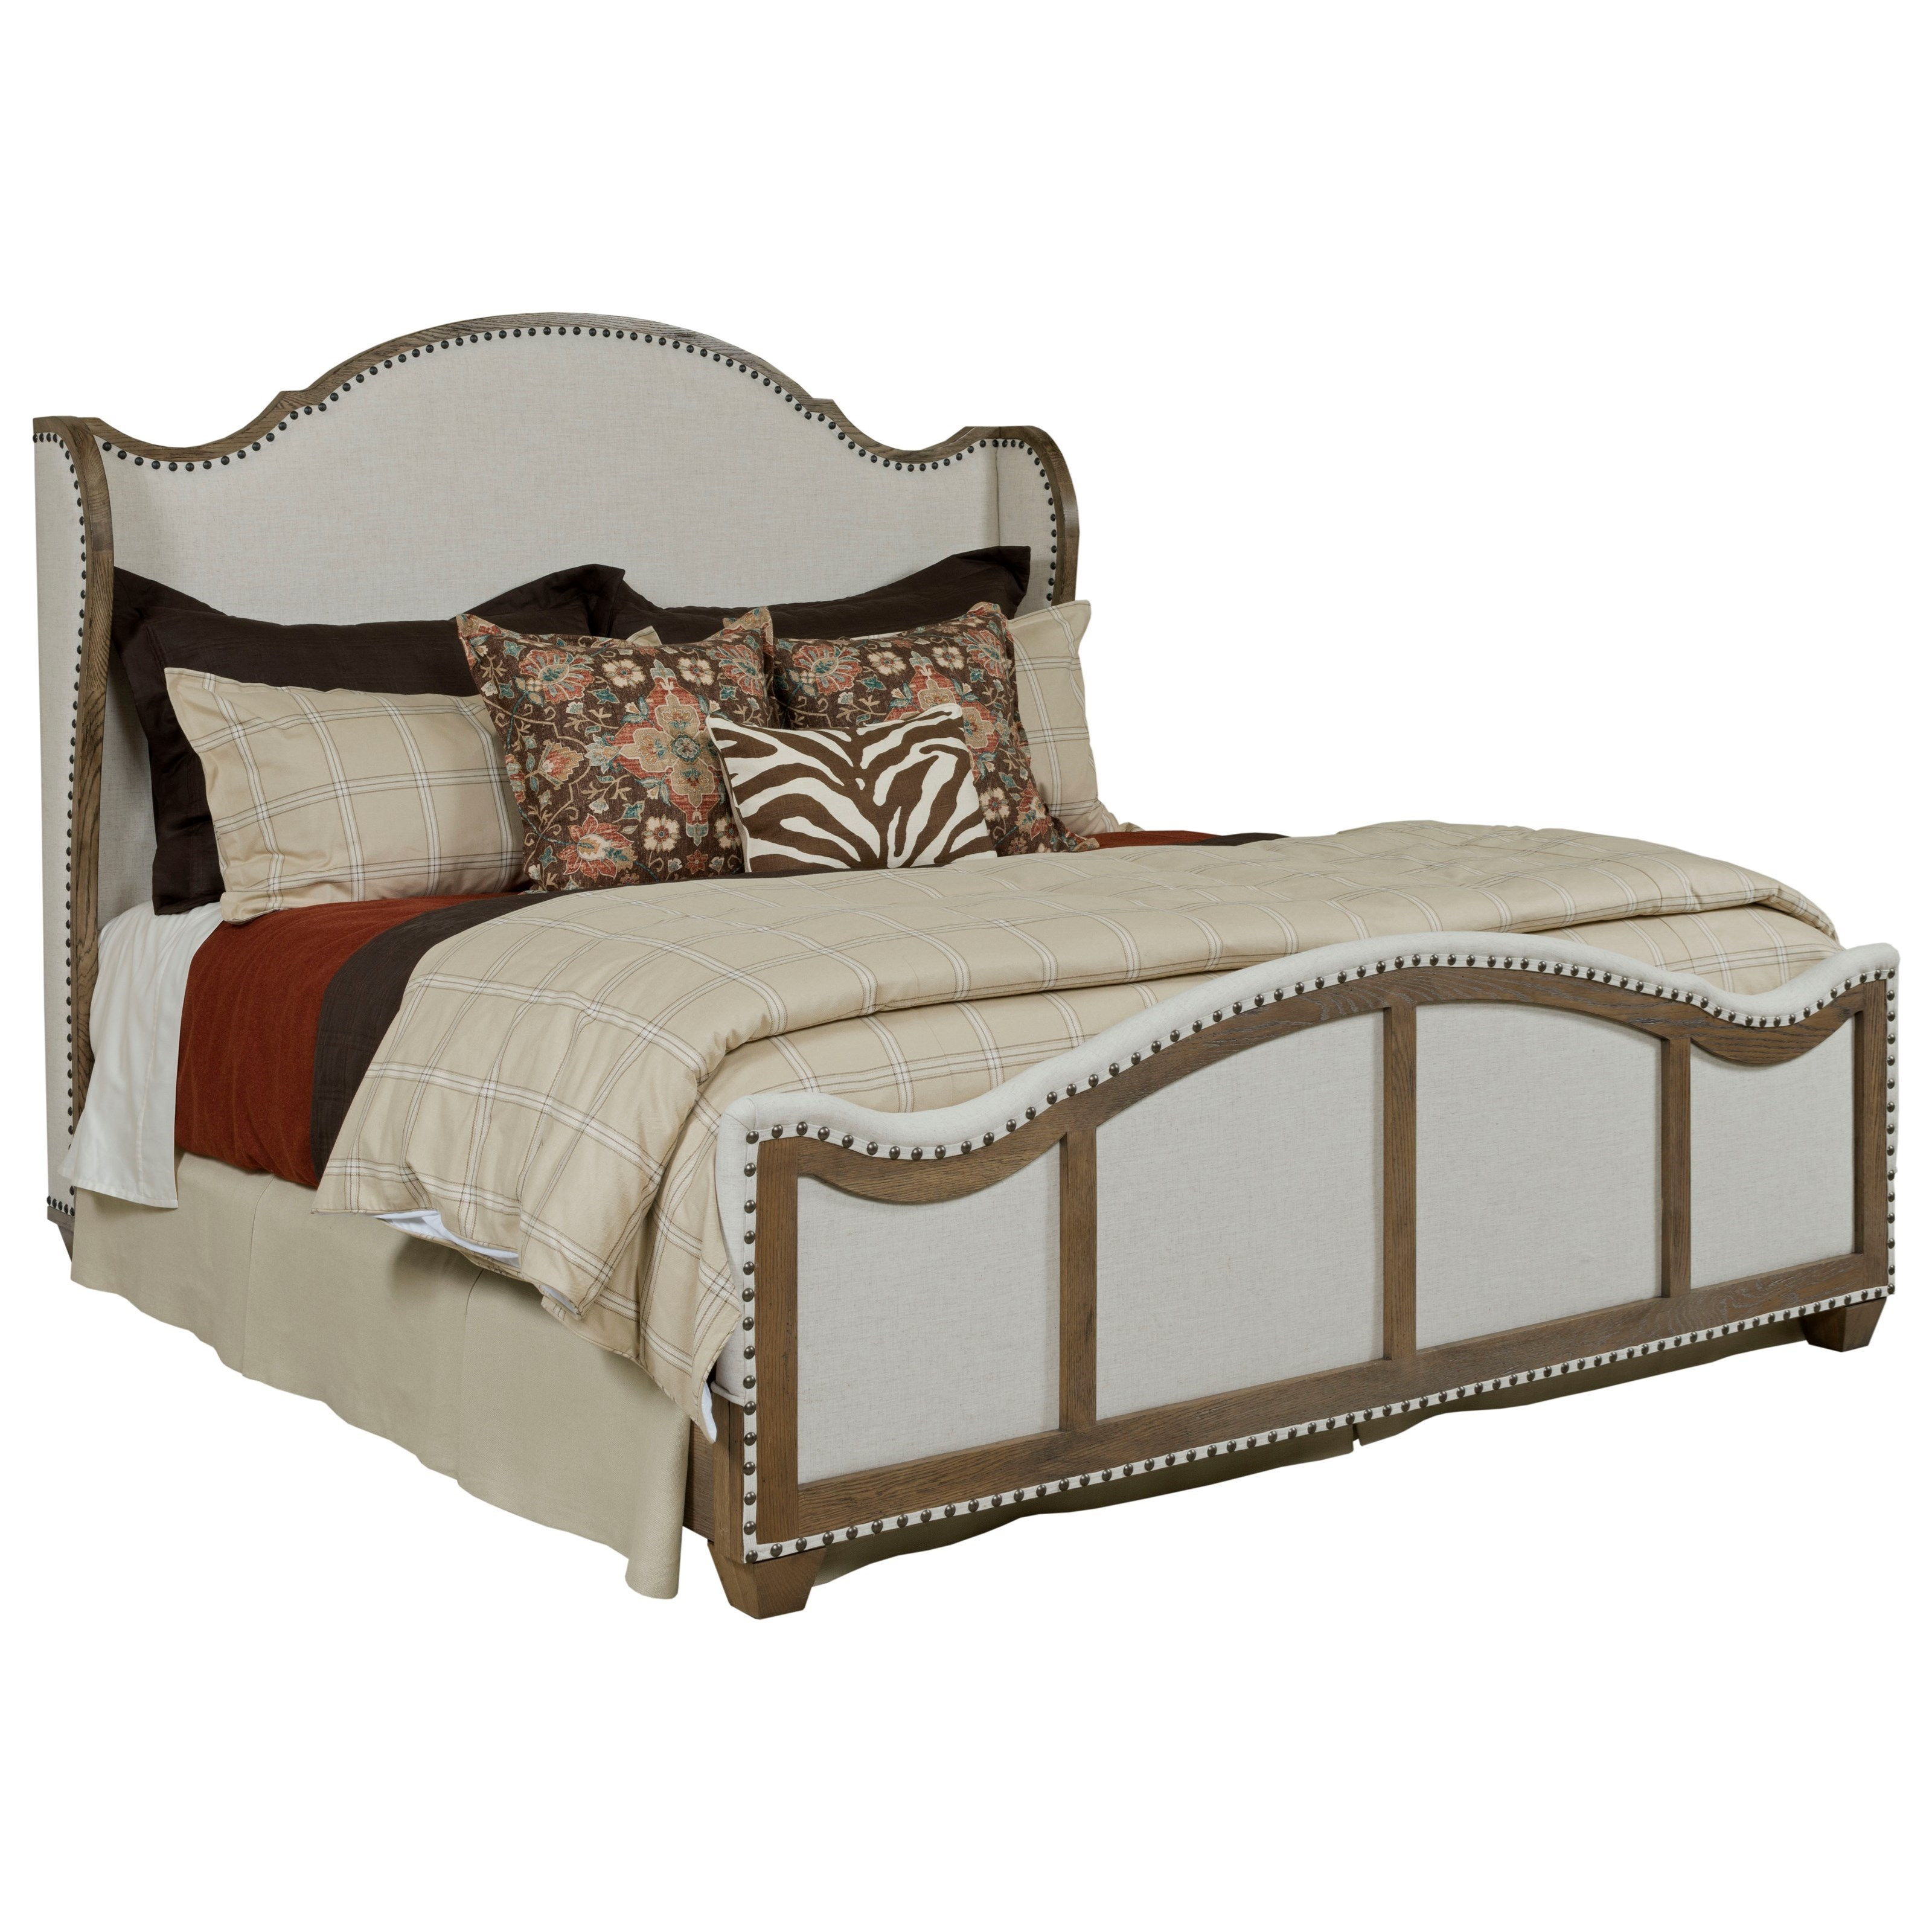 Trails Crossnore California King Bed by Kincaid Furniture at Johnny Janosik